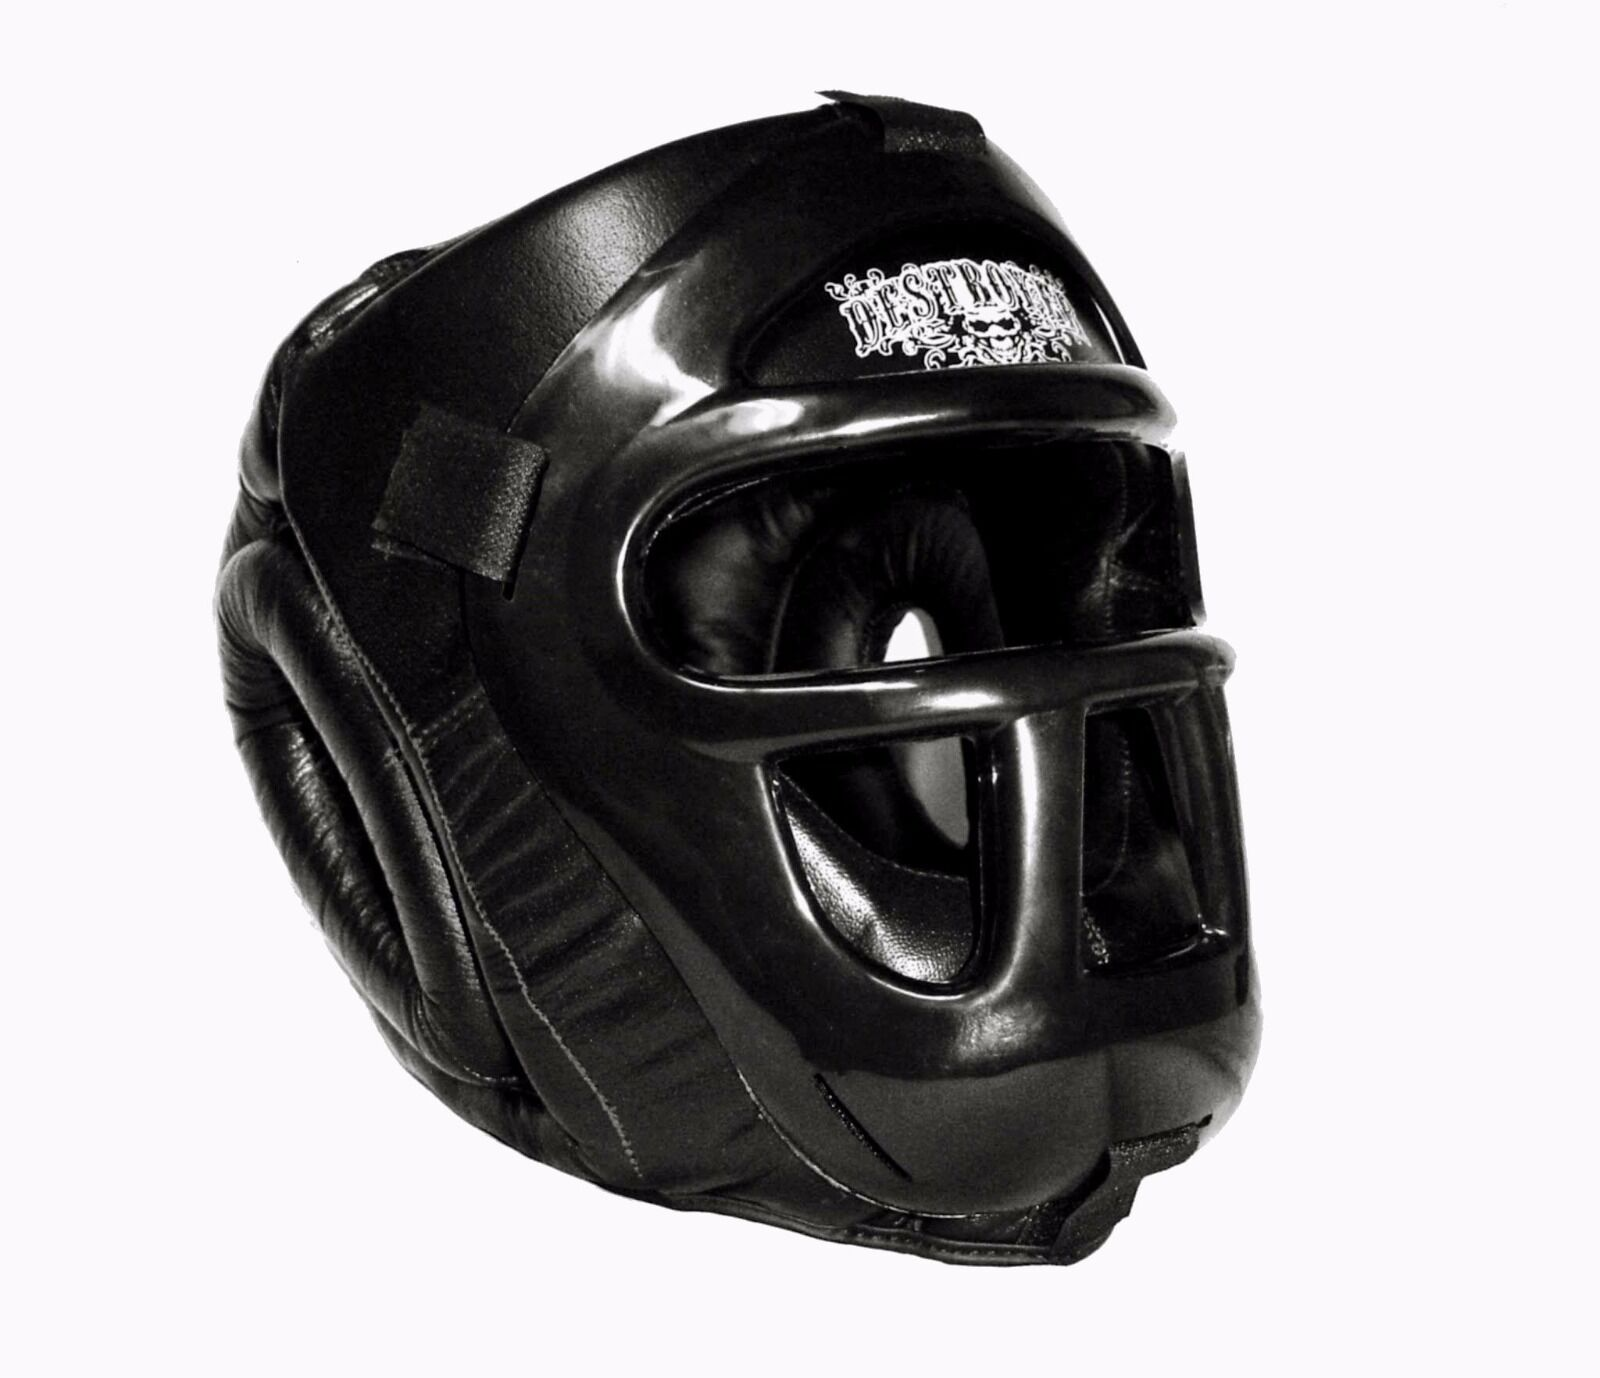 Destroyer leather premium head gear with hard face guard